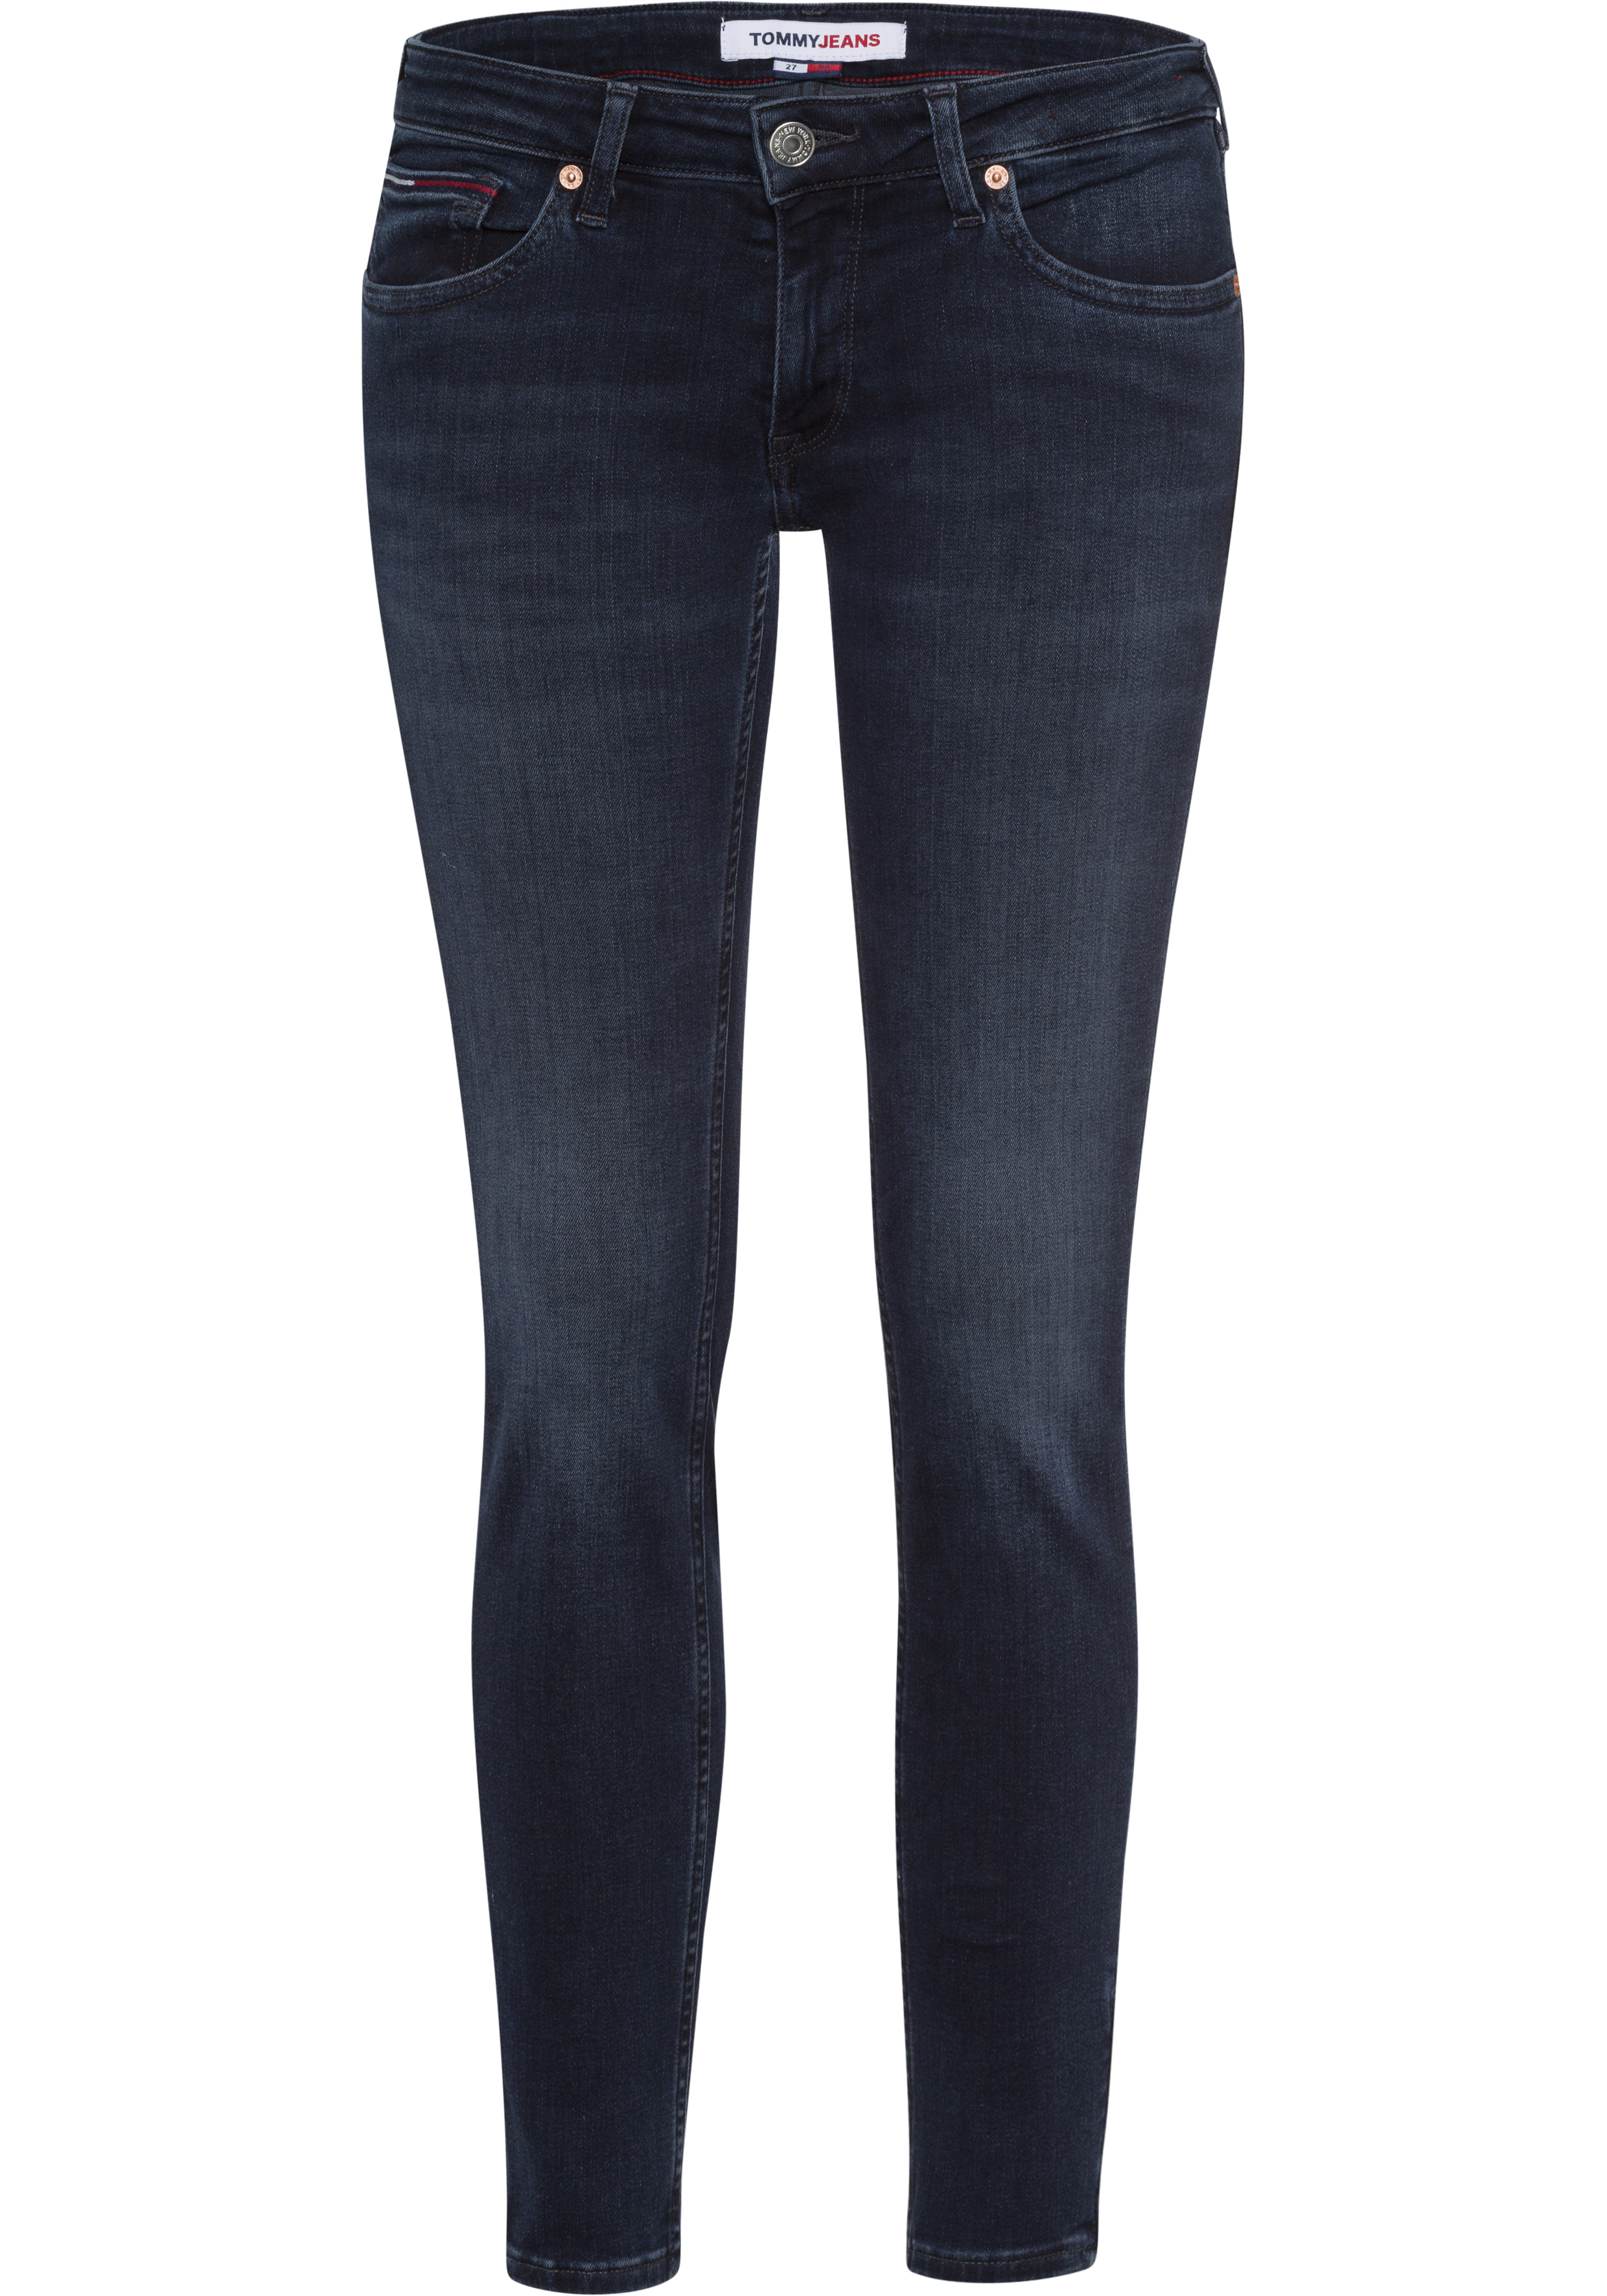 tommy jeans -  Skinny-fit-Jeans SOPHIE LR SKNY AE114 ELBS, mit leichten Faded-out & TommyJeans Logo-Badge